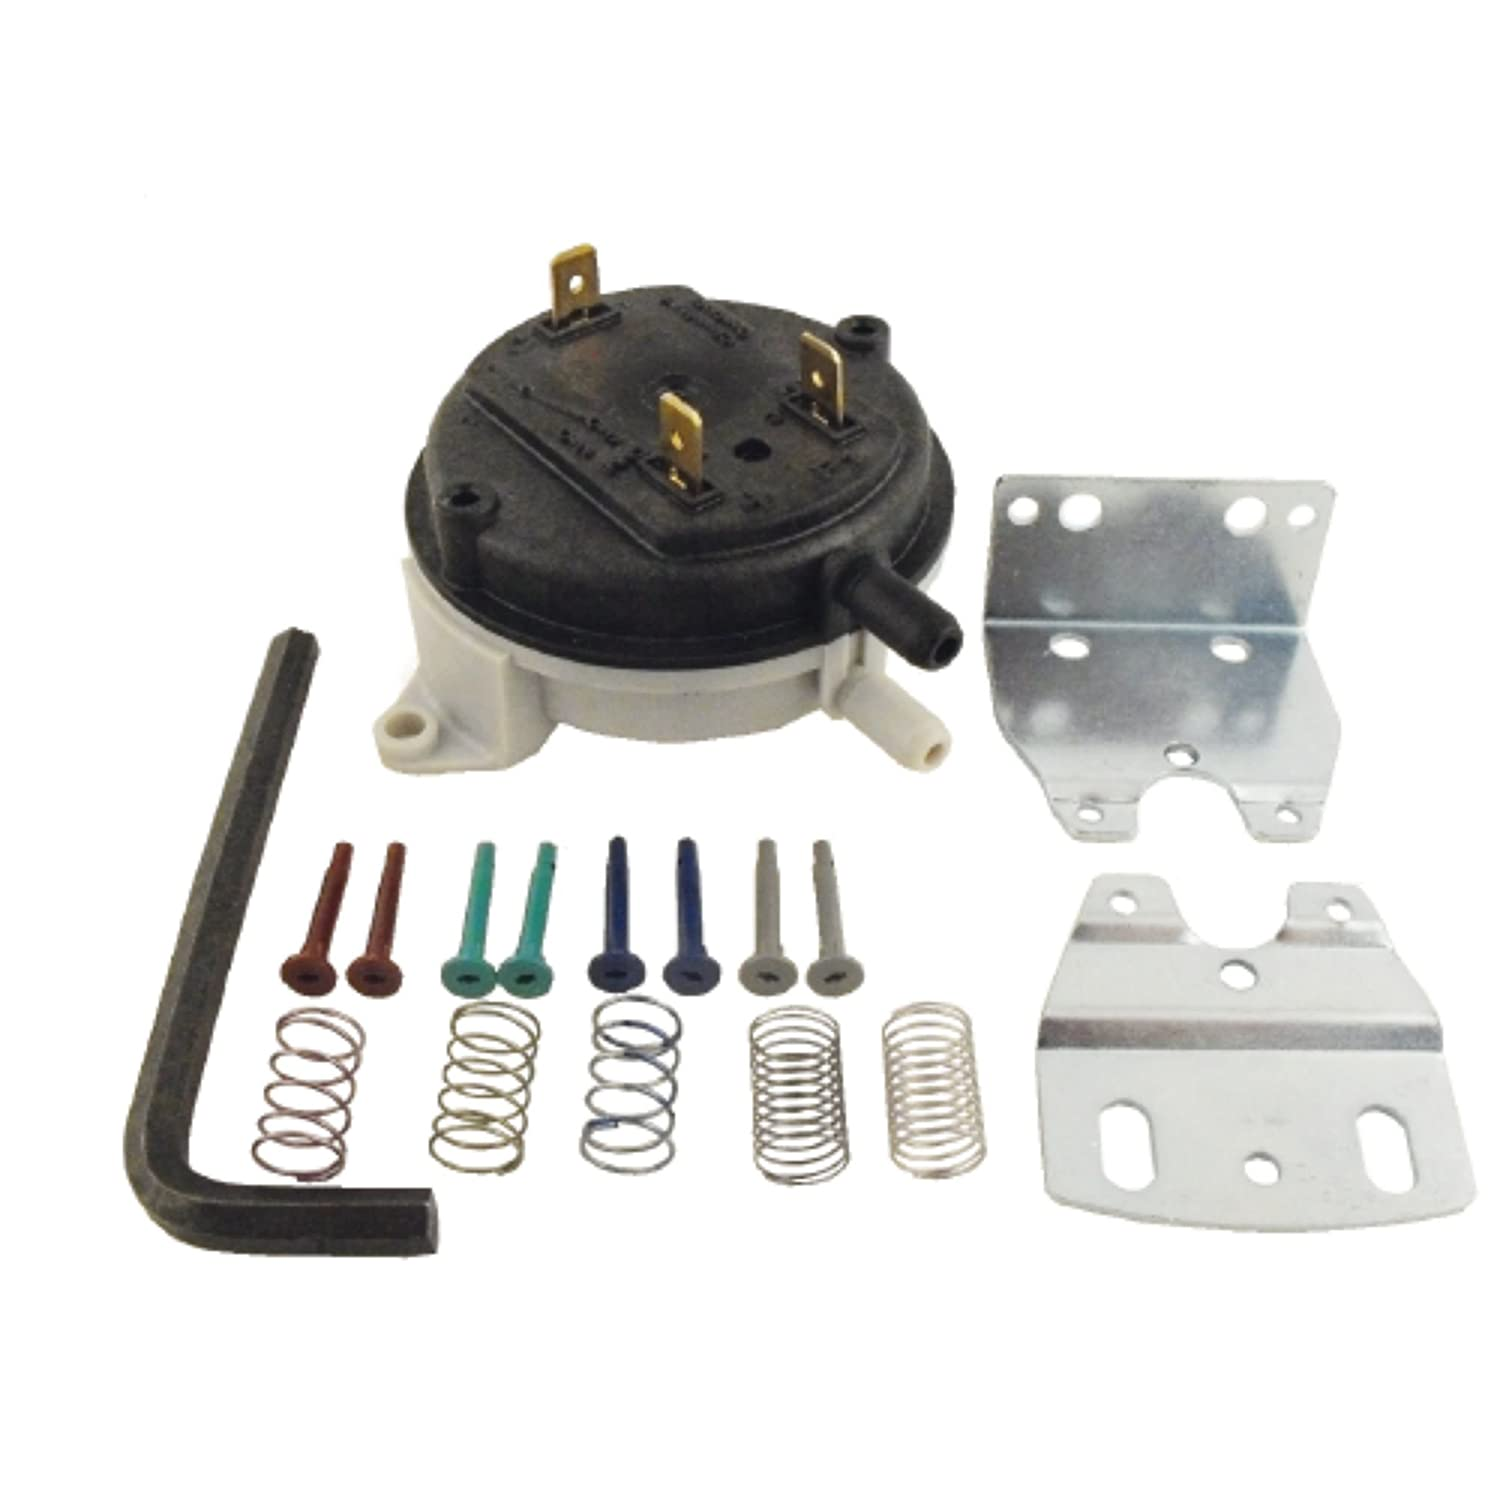 SUPCO NS2000031 Universal Pressure Switch, 100, 000 Cycles, 14'W.C, -40 Degree F to 190 Degree F 14W.C Sealed Unit Parts Co. Inc